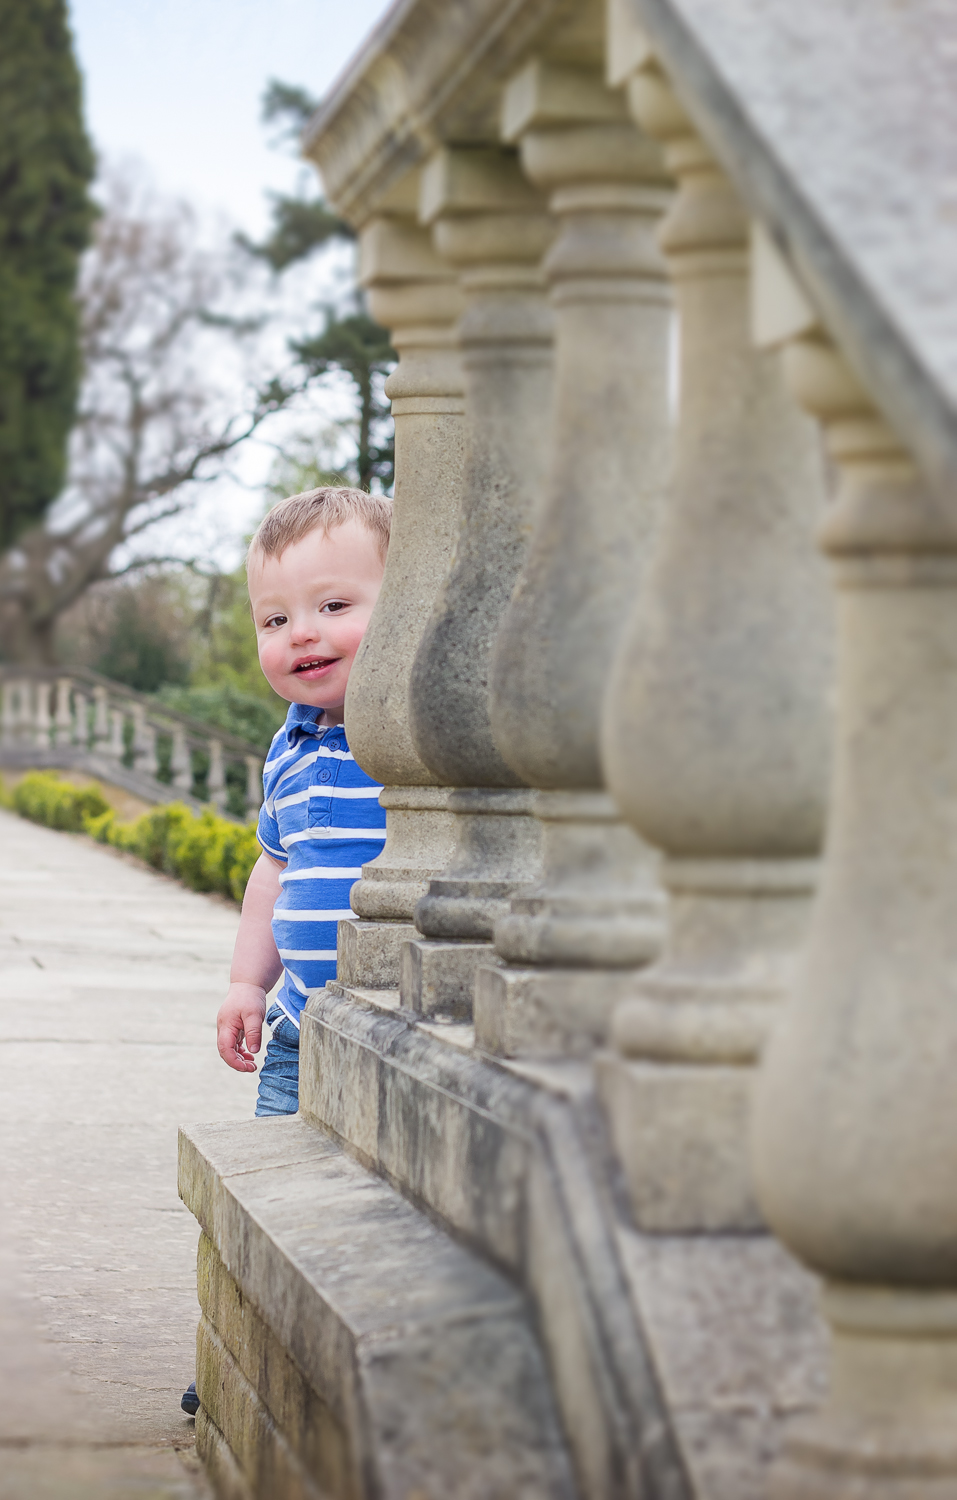 Two year old child photography session shows the little boy peeking around the corner of the stone balustrades